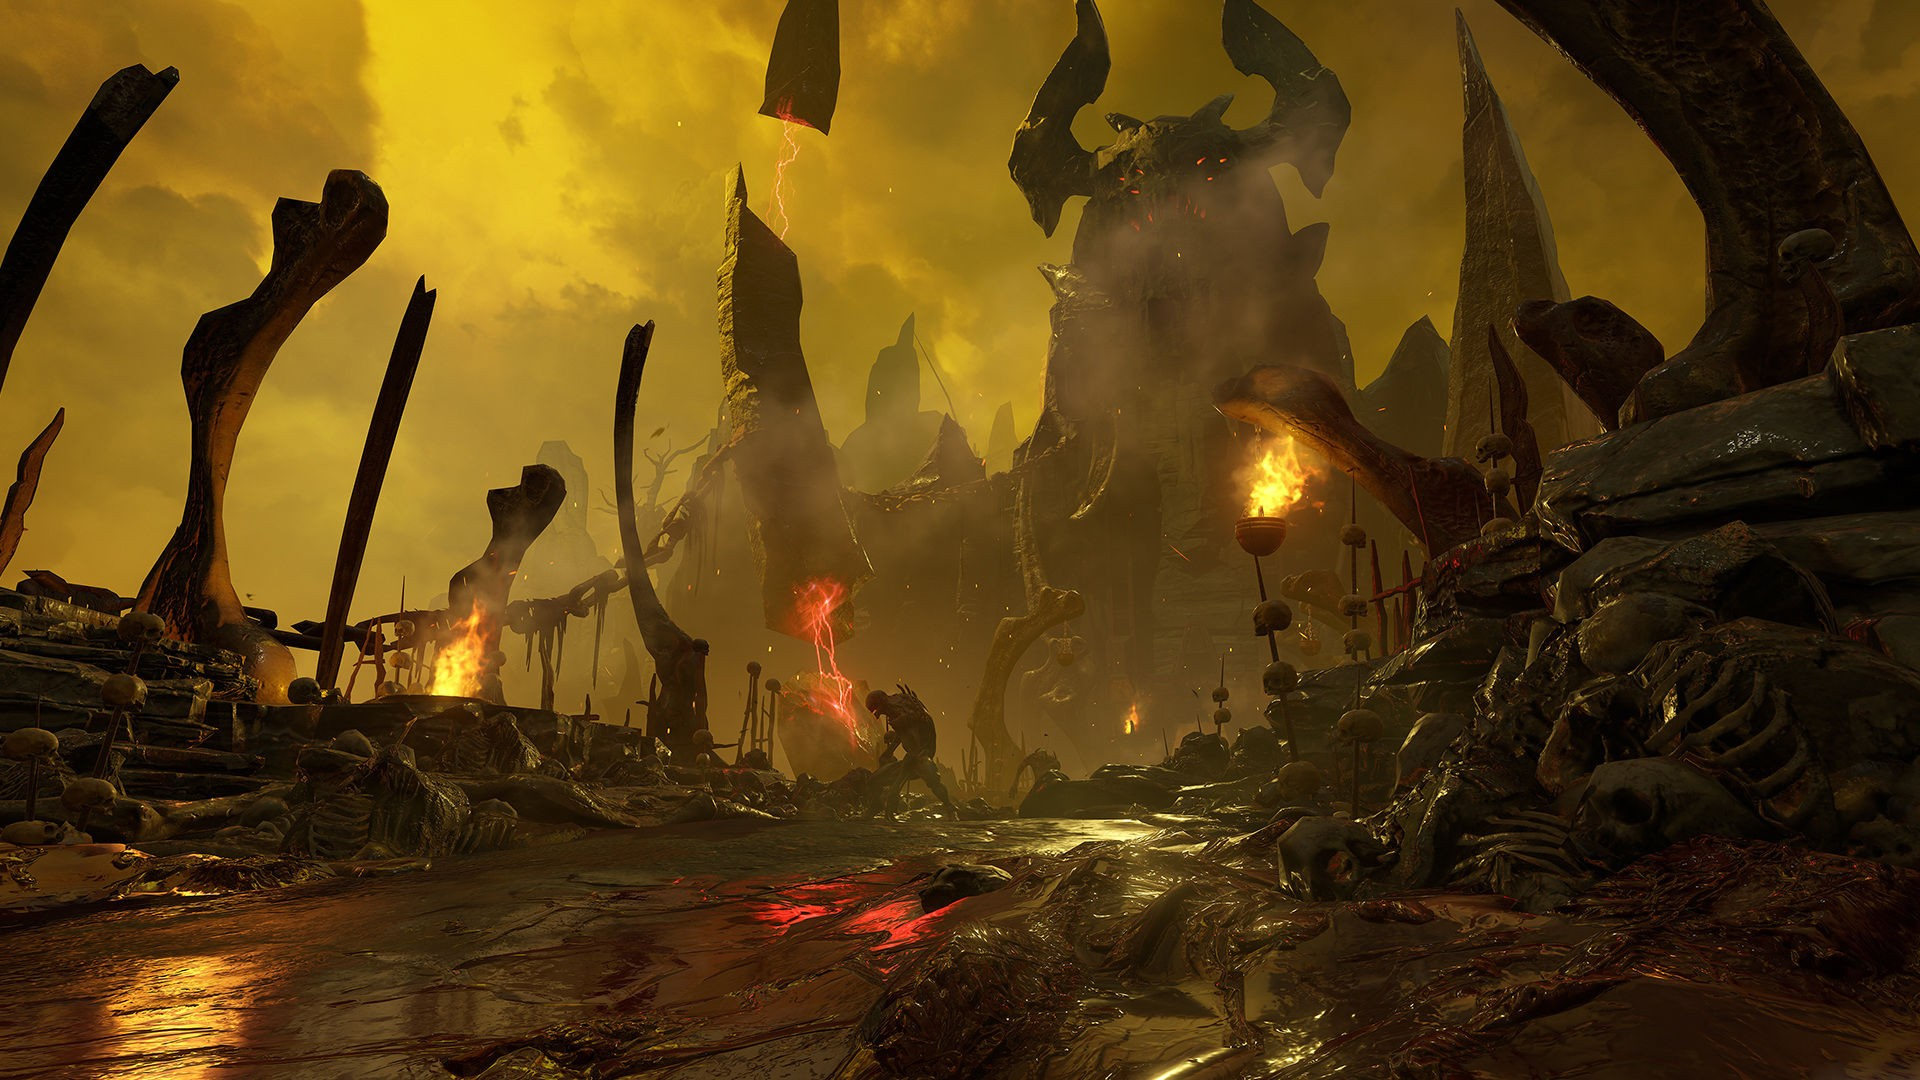 doom 4 wallpapers, images, backgrounds, photos and pictures